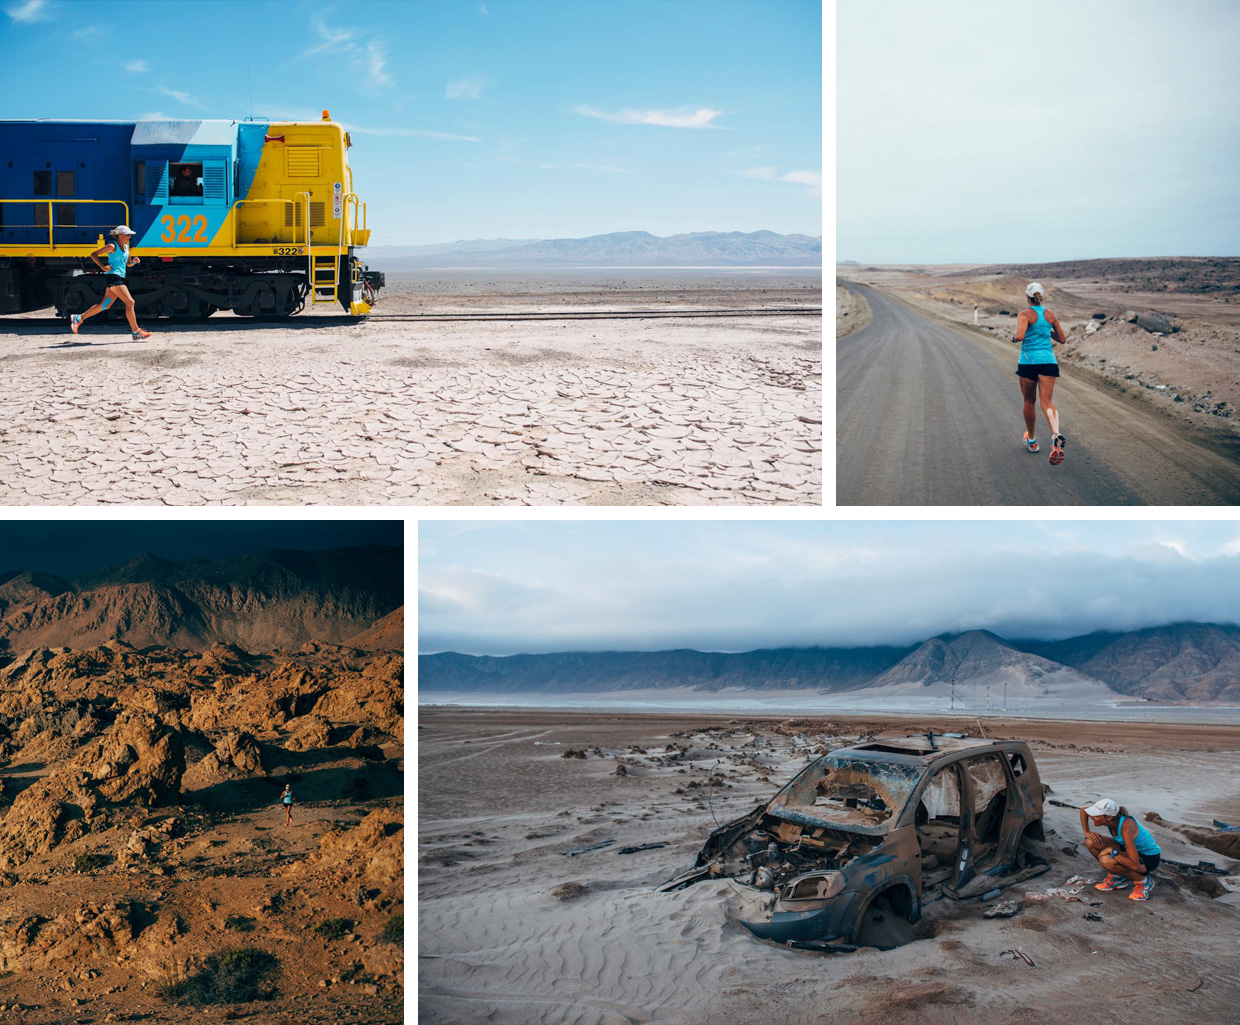 Water advocate completes 40 marathons in 7 deserts